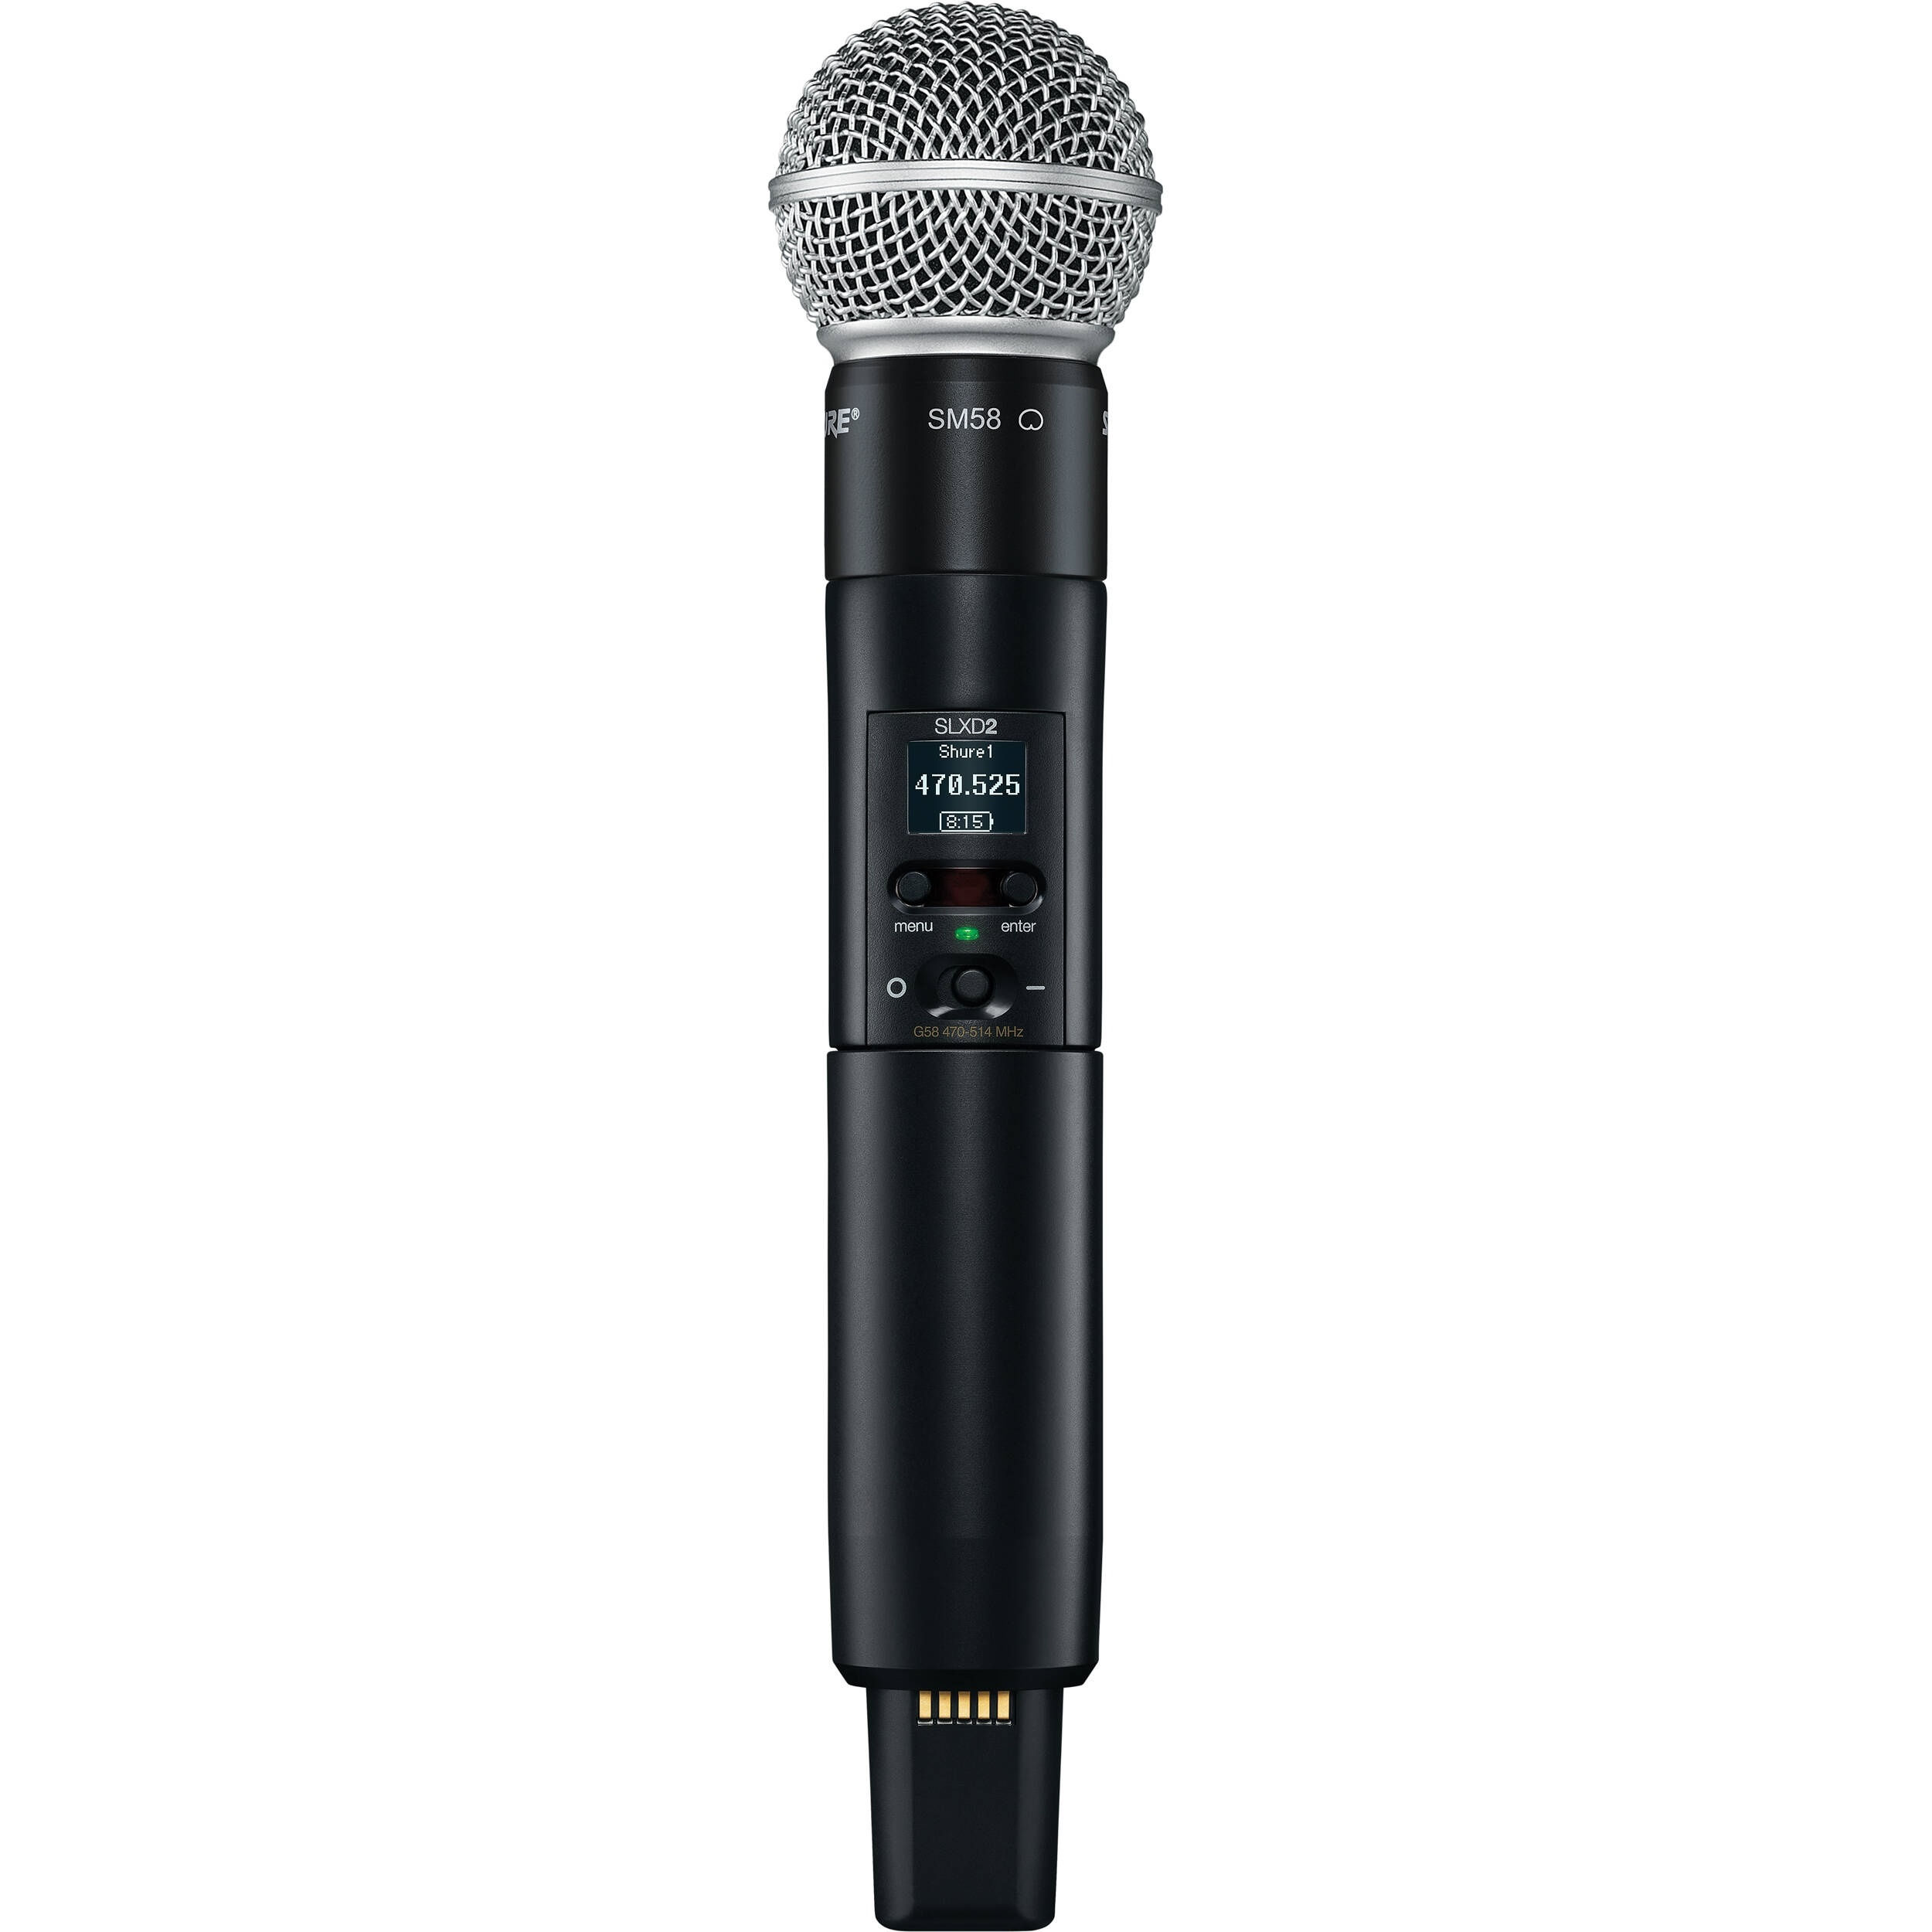 Shure SLXD2/SM58 Digital Wireless Handheld Microphone Transmitter with SM58 Capsule